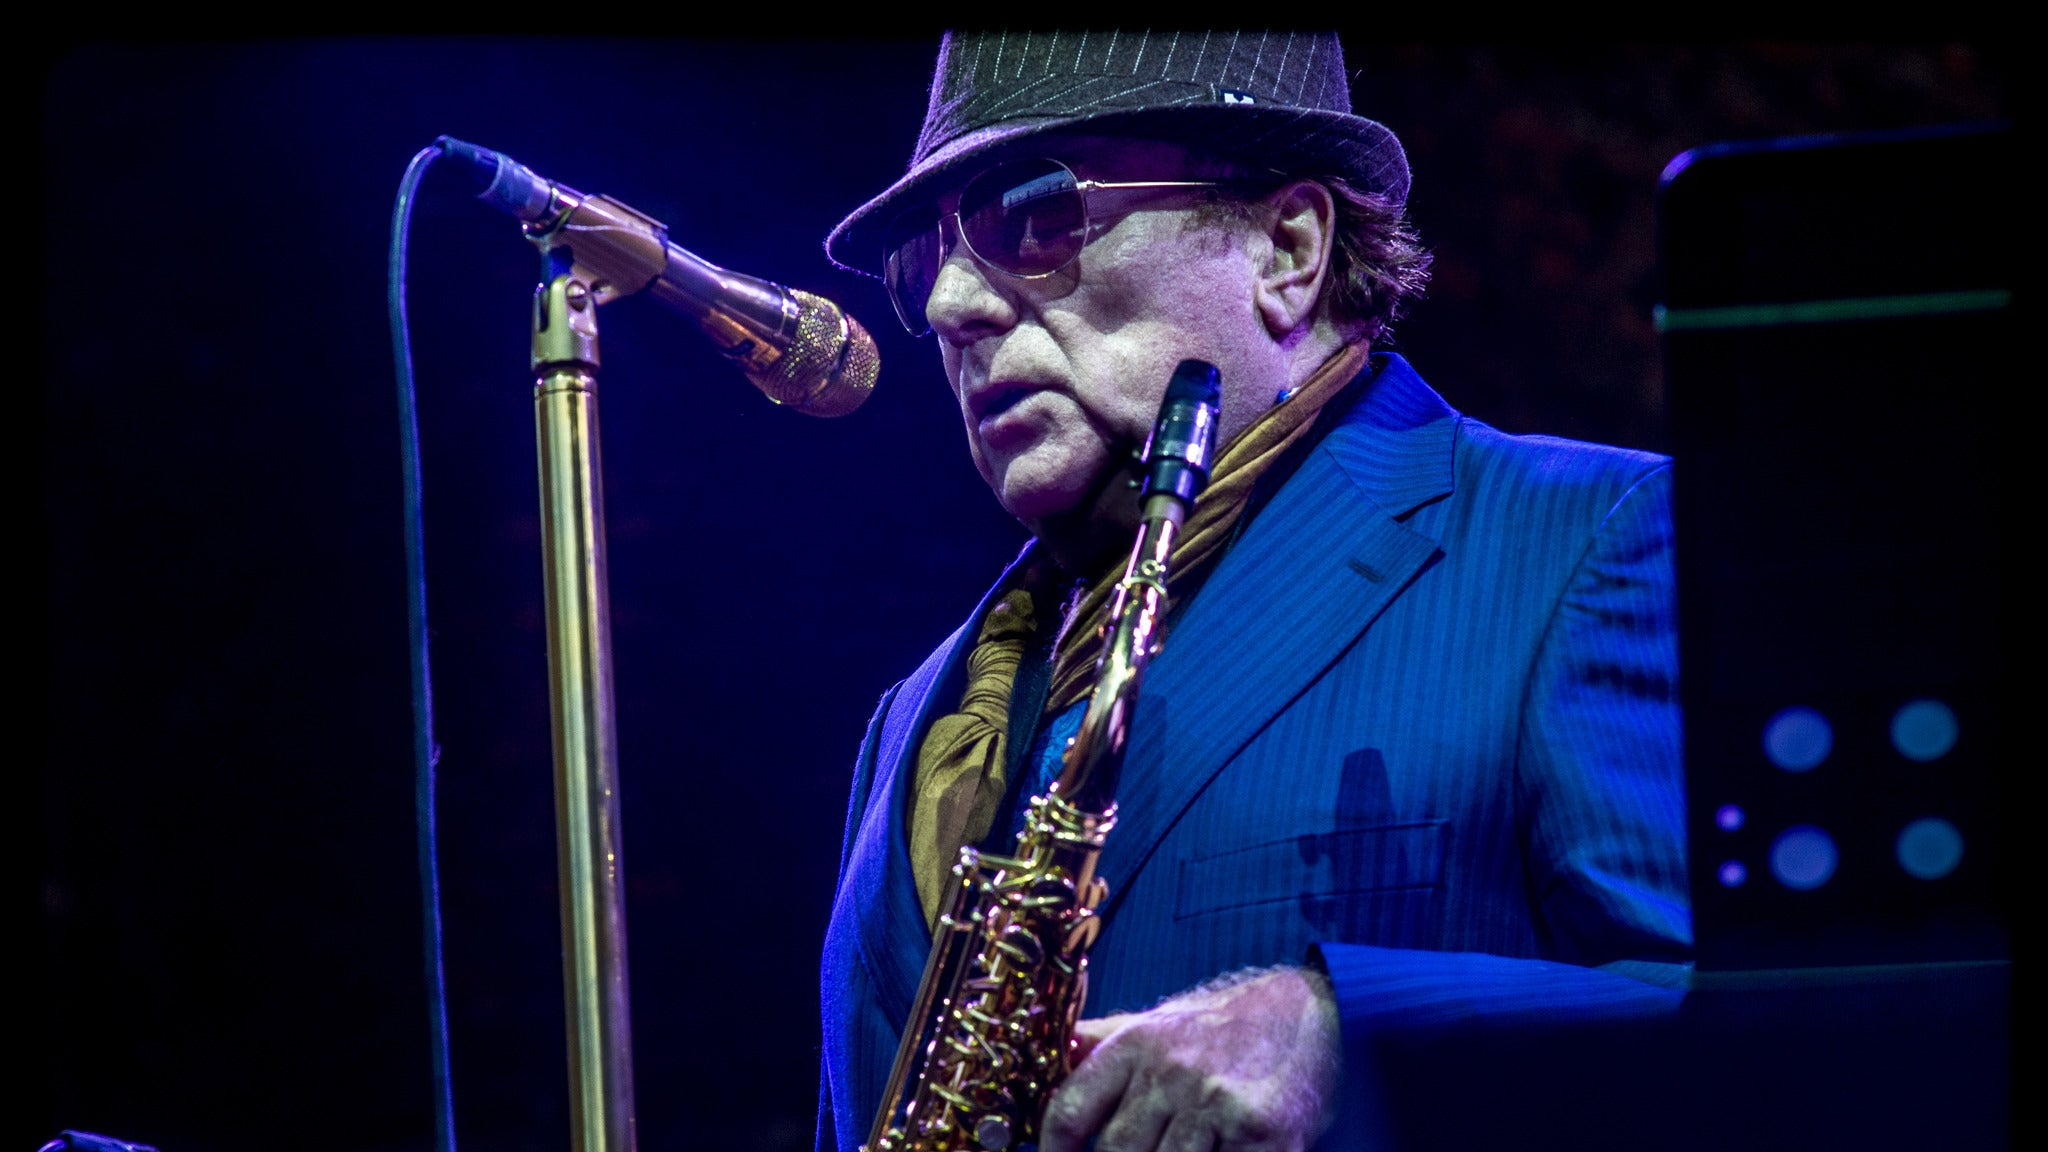 Van Morrison at The Wiltern - Los Angeles, CA 90010